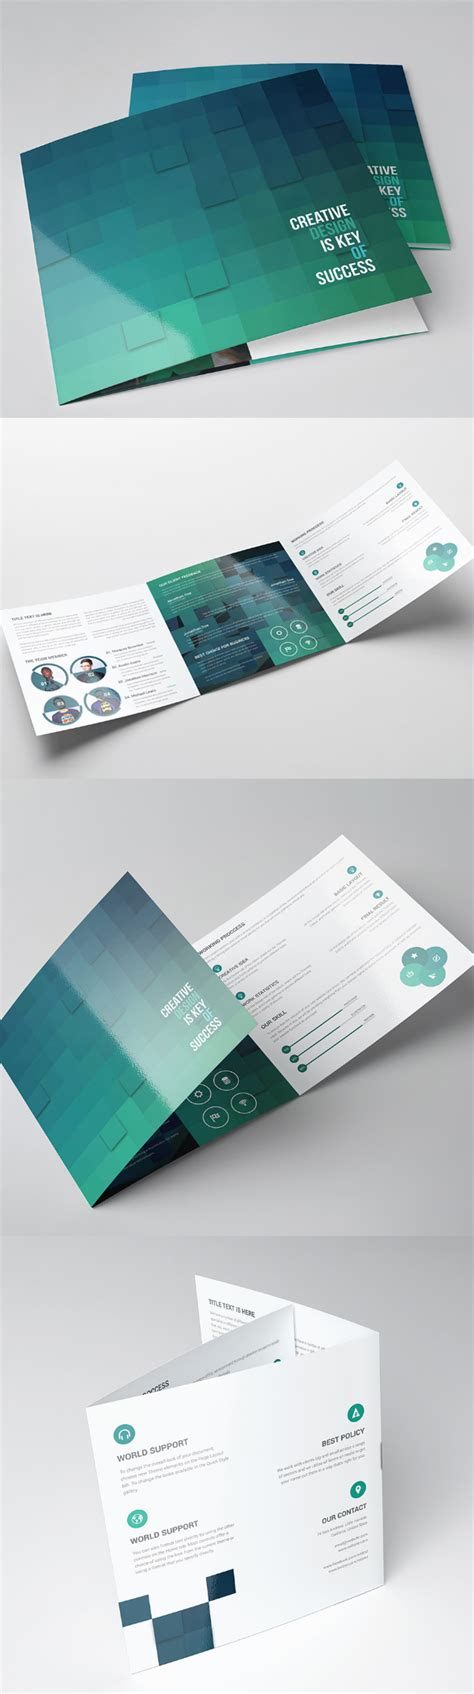 new catalog brochure design templates design graphic